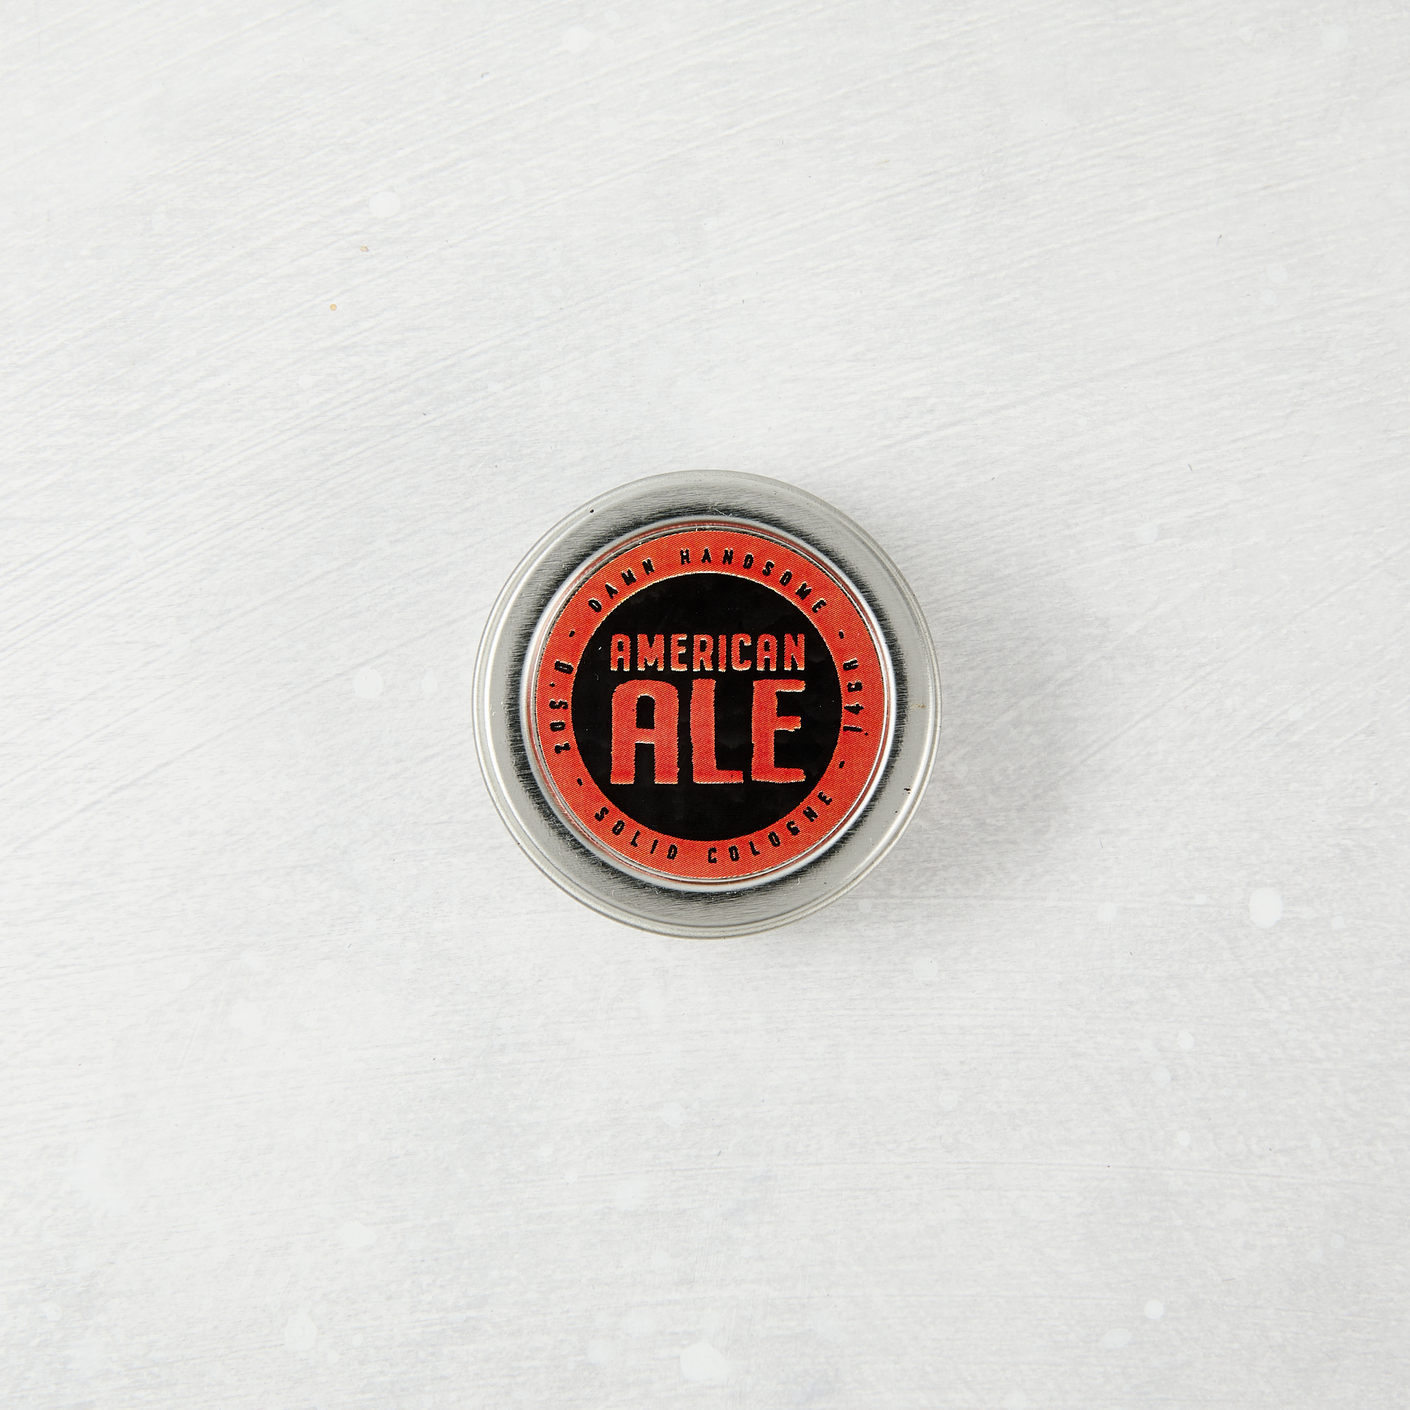 Damn Handsome Grooming Co. Solid Cologne, American Ale